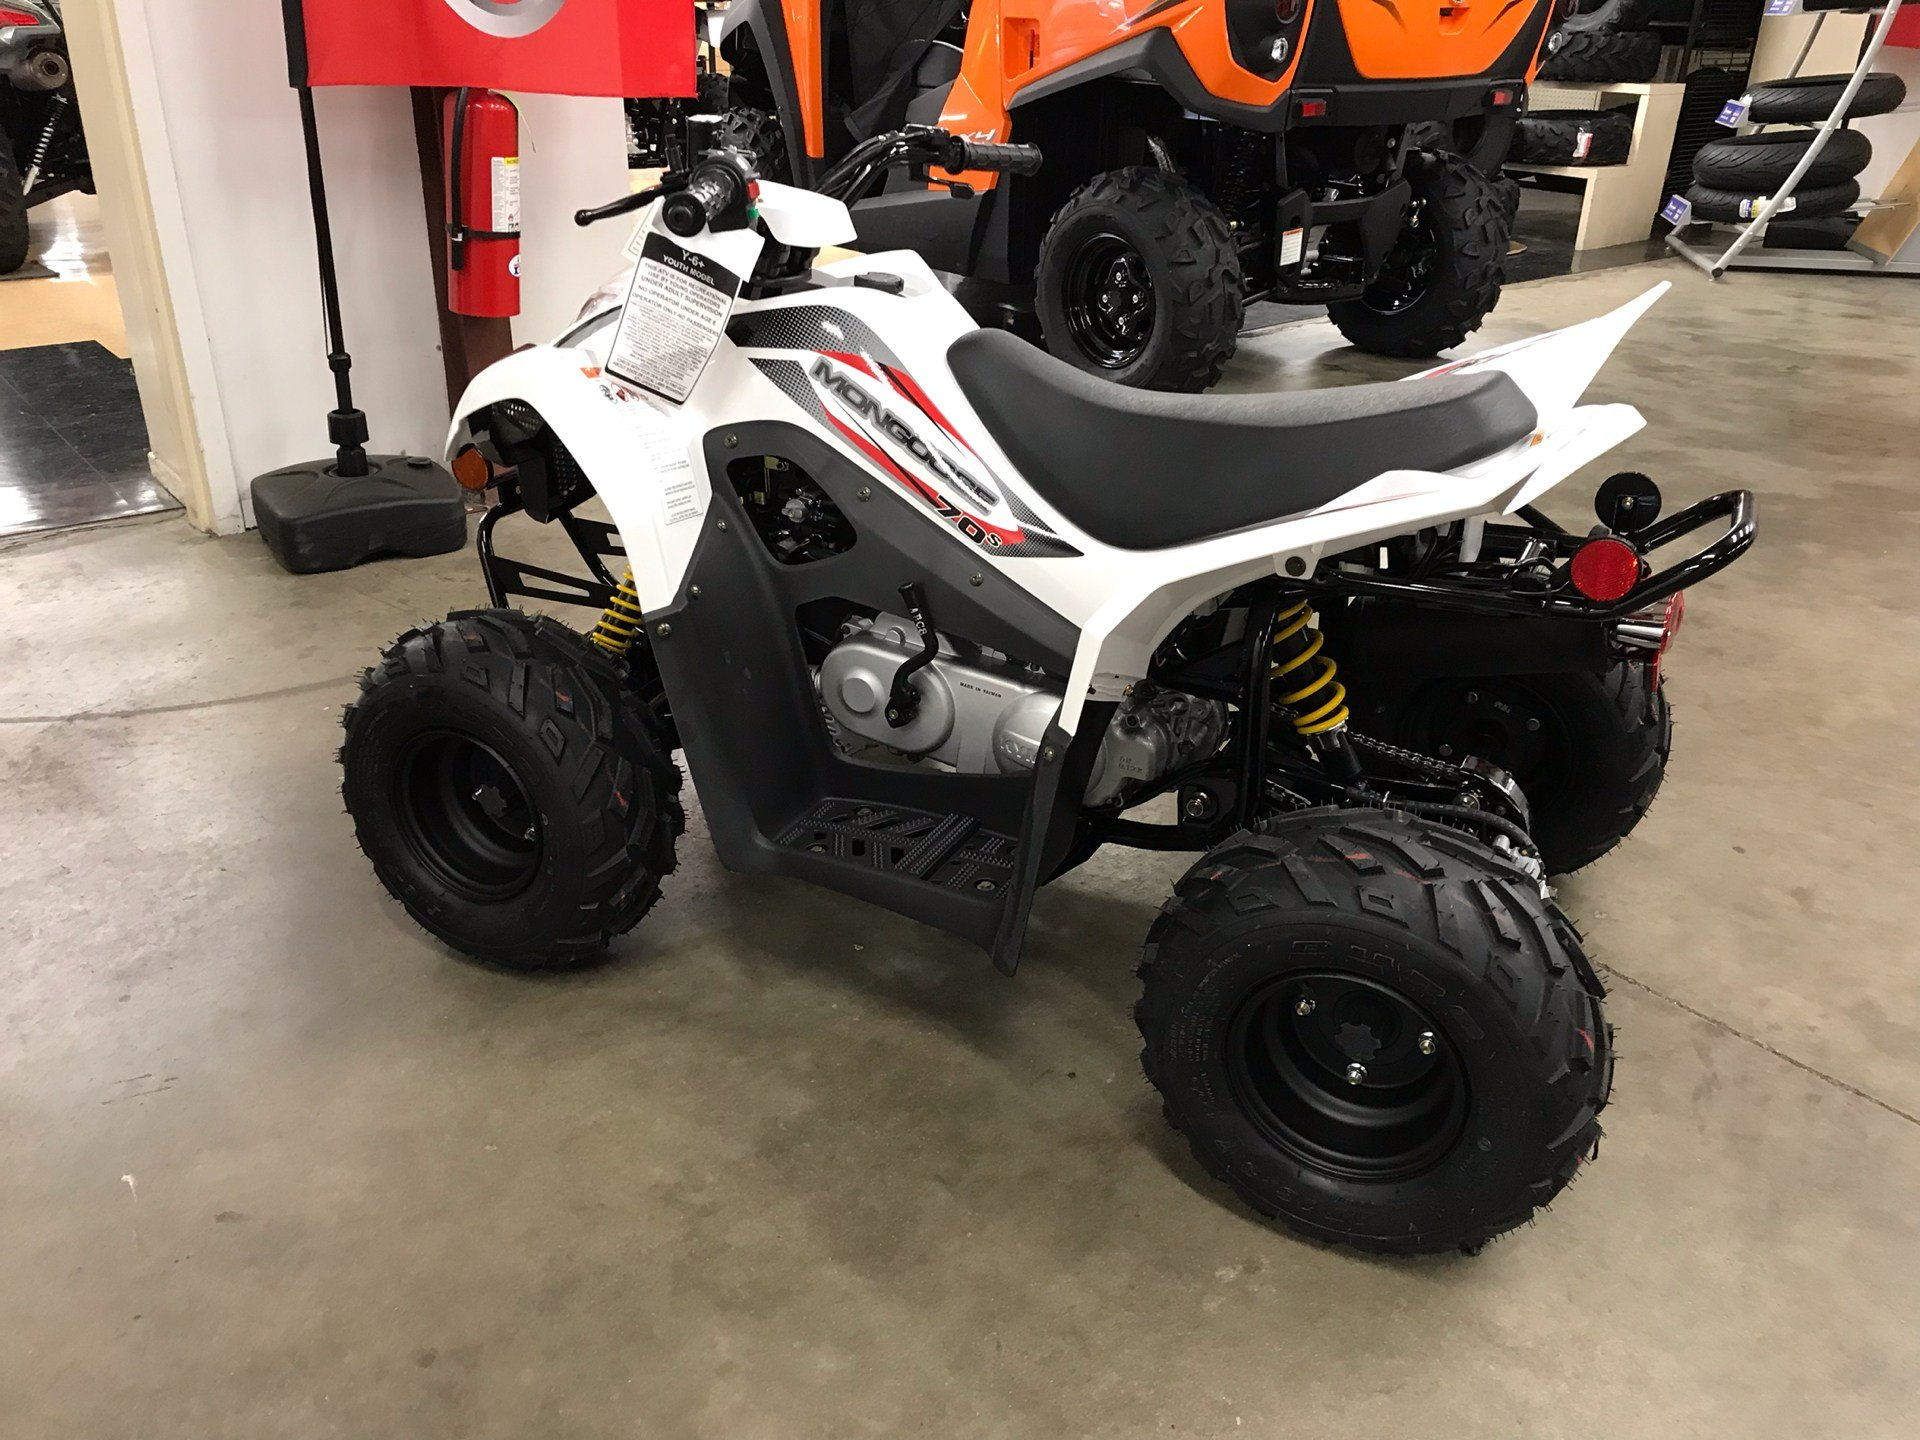 2019 Kymco Mongoose 70s in Sanford, North Carolina - Photo 7